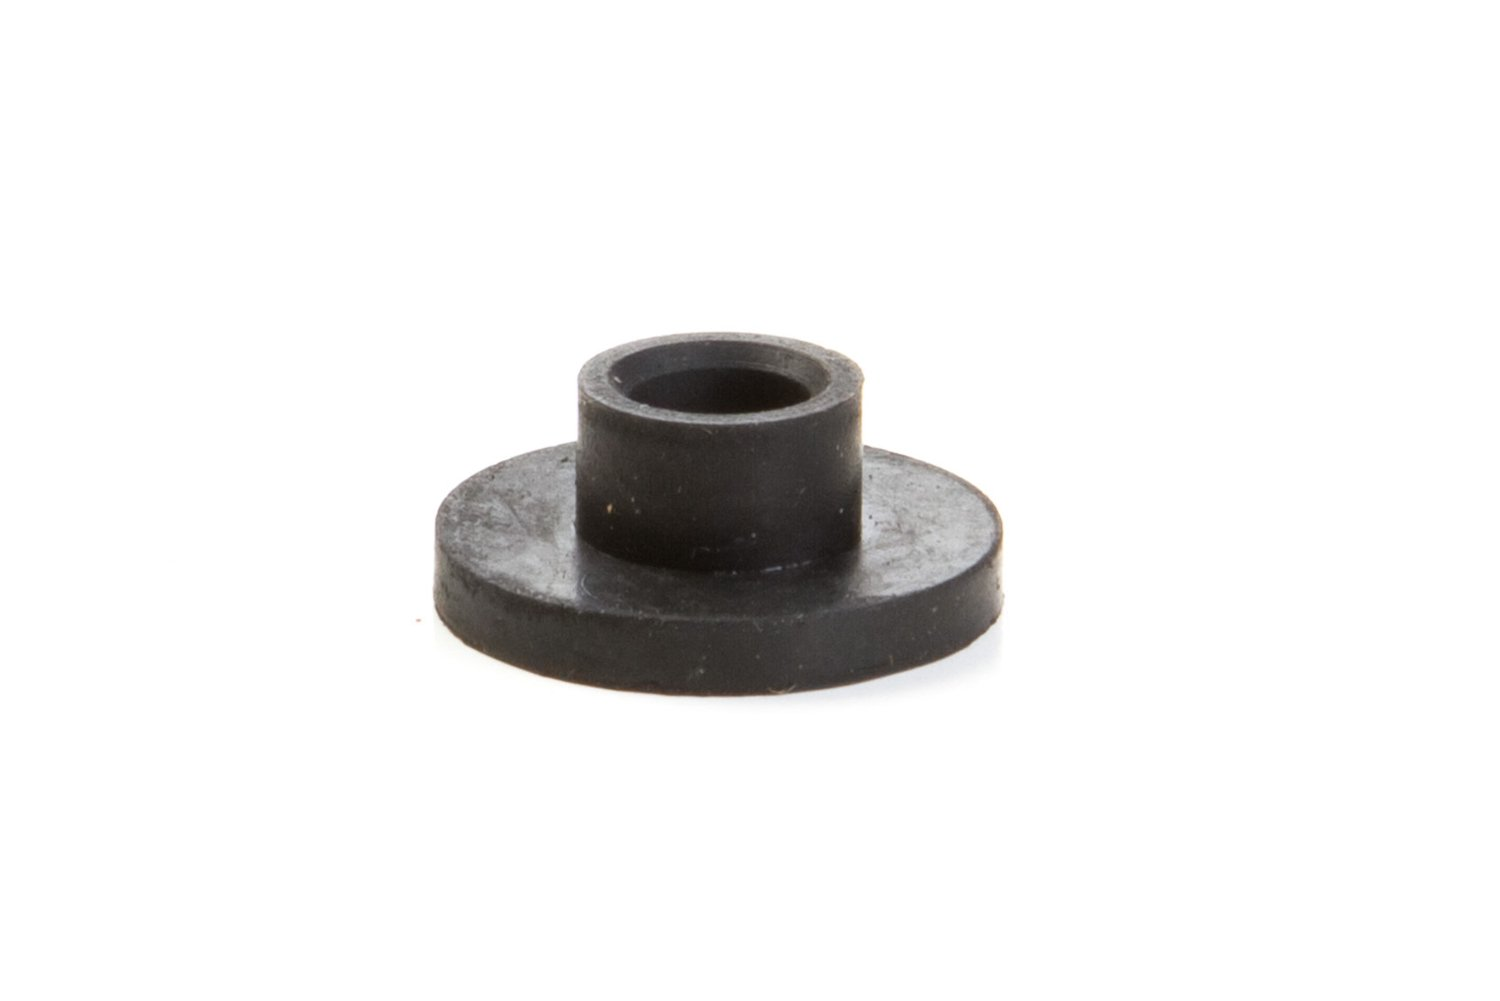 Briggs & Stratton 96002GS Bushing Replaces 96002 by Briggs & Stratton (Image #1)